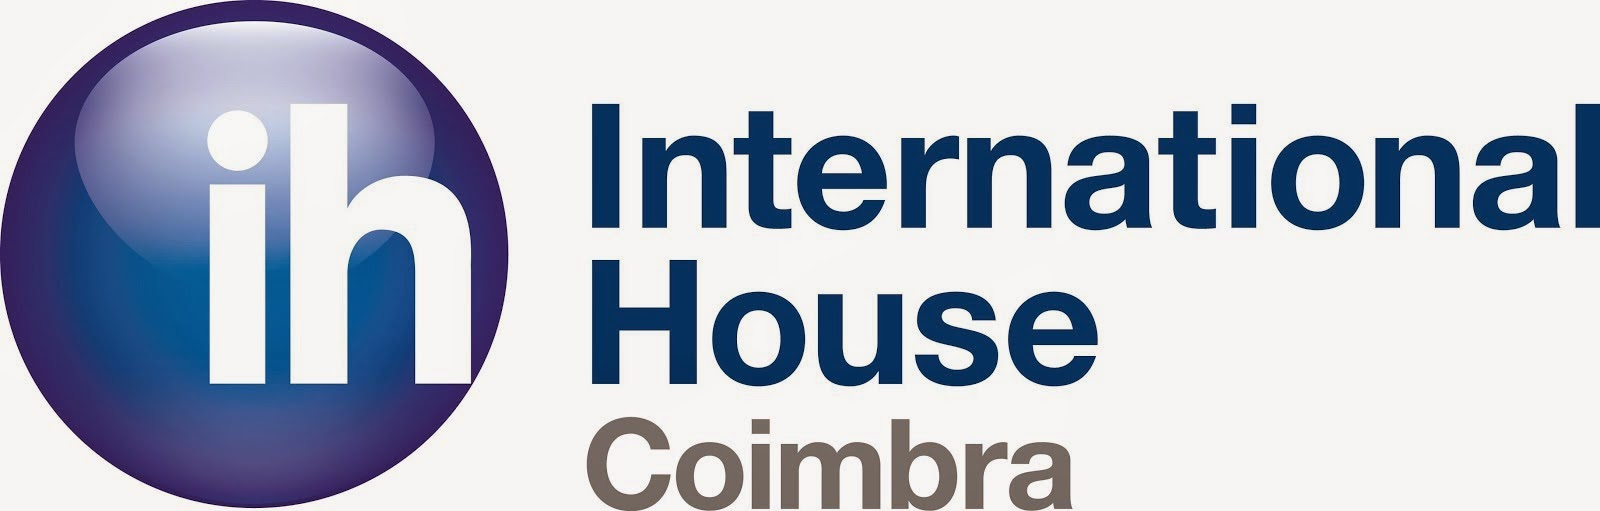 International House - Coimbra